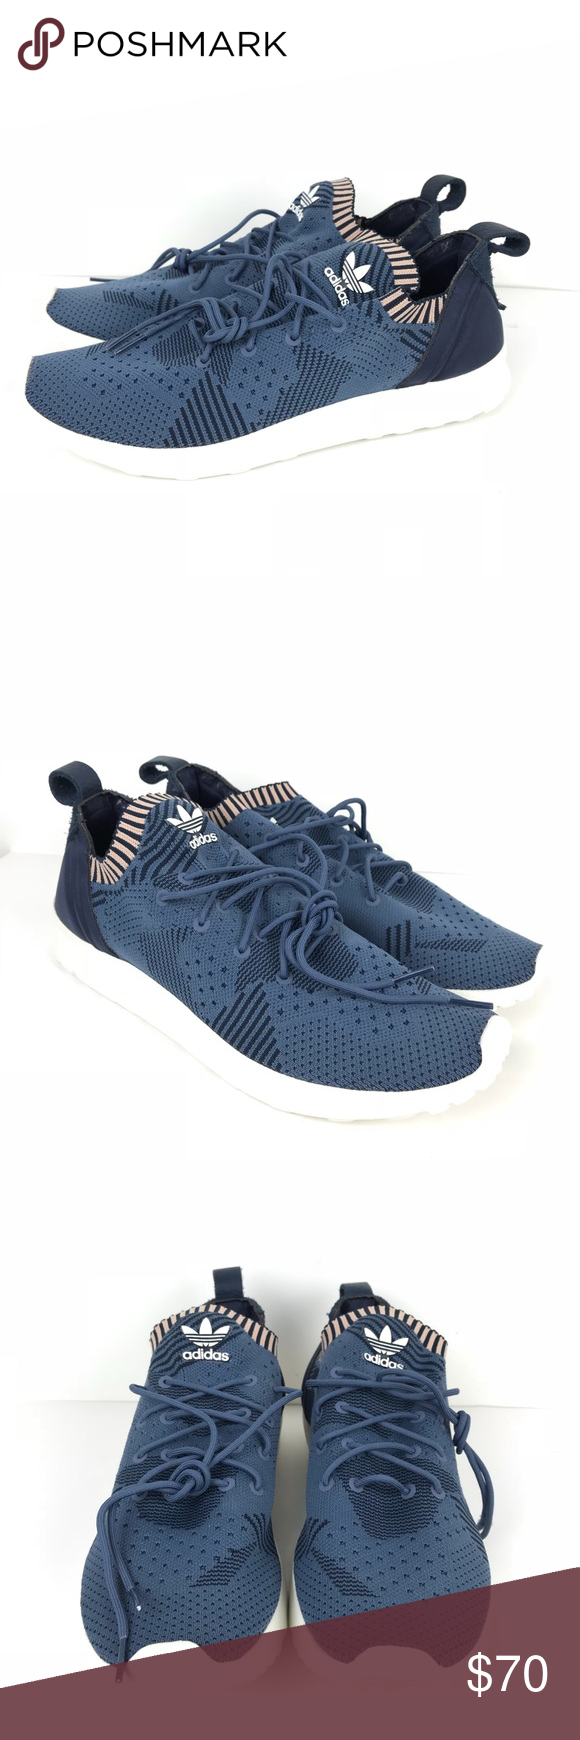 a8b71b0f5 Adidas ZX Flux Adv Virtue Pk Primeknit Womens Adidas ZX Flux Adv Virtue Pk  Primeknit Blue Womens Shoe box not included. Size 9.5 New without tags  adidas ...